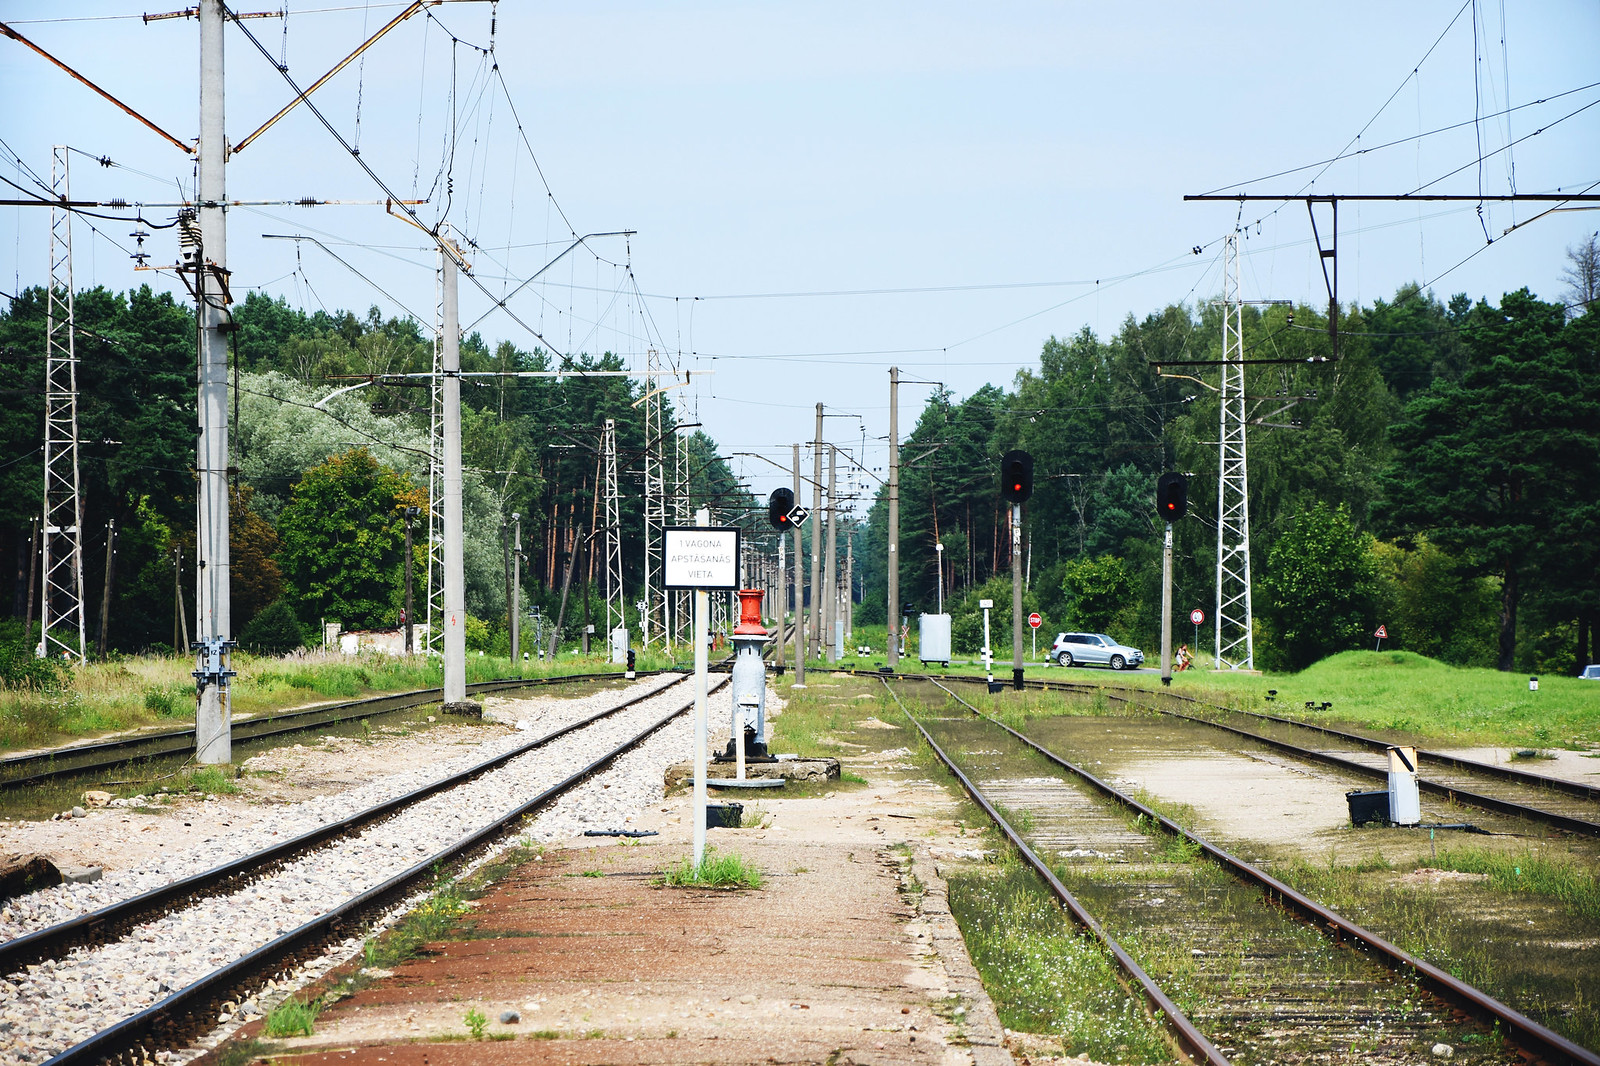 Saulkrasti train station